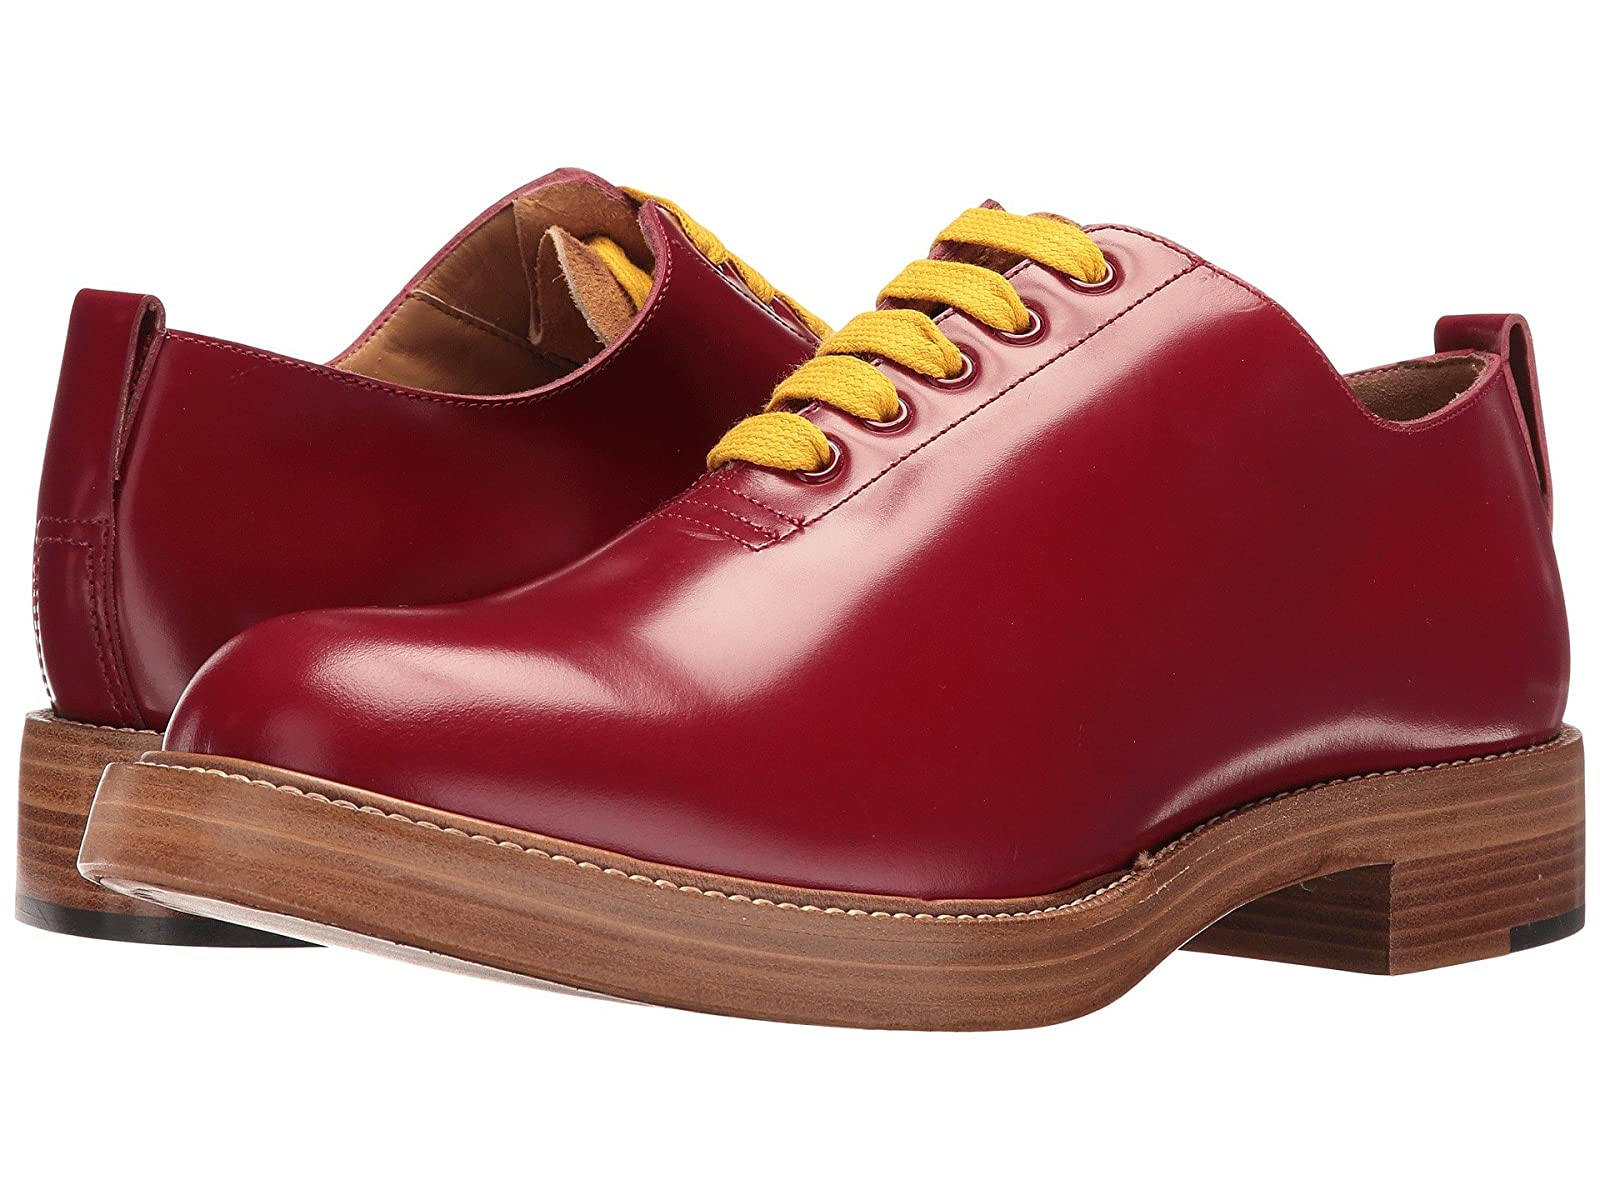 Vivienne Westwood Tommy ShoeCheap and distinctive eye-catching shoes